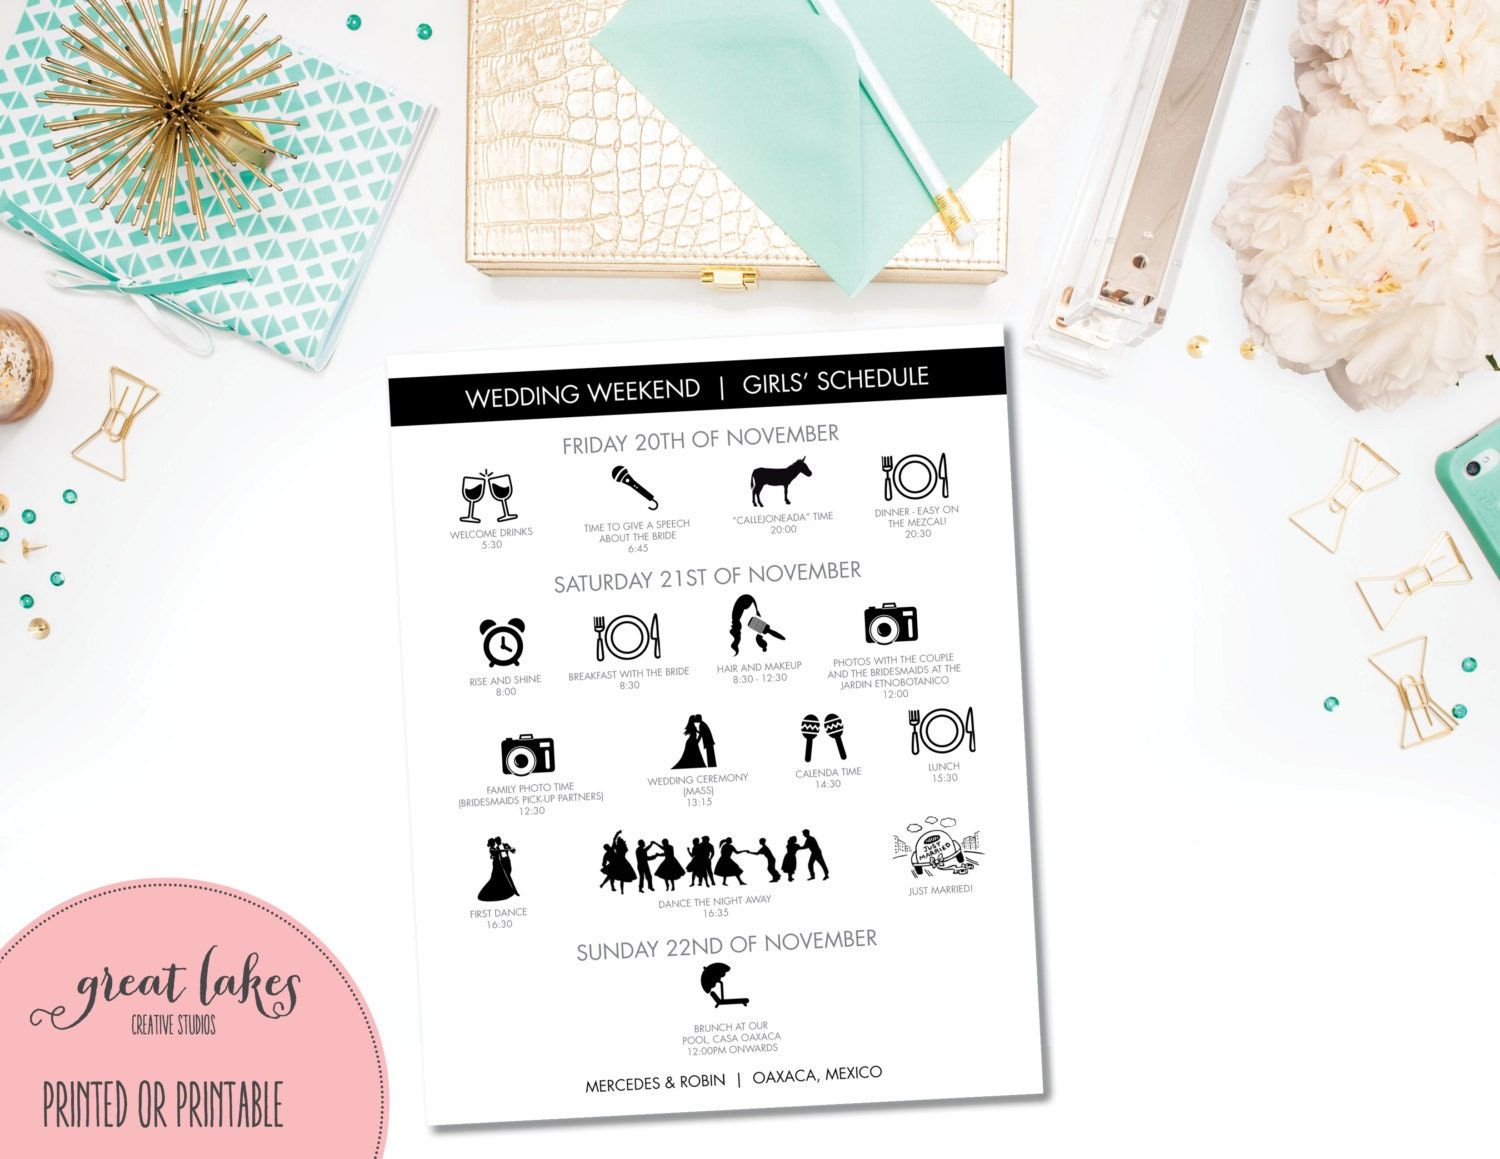 Wedding Table Wedding Timeline wedding day timeline etsy modern agenda icons bridal party graphic clip art silhouette printable